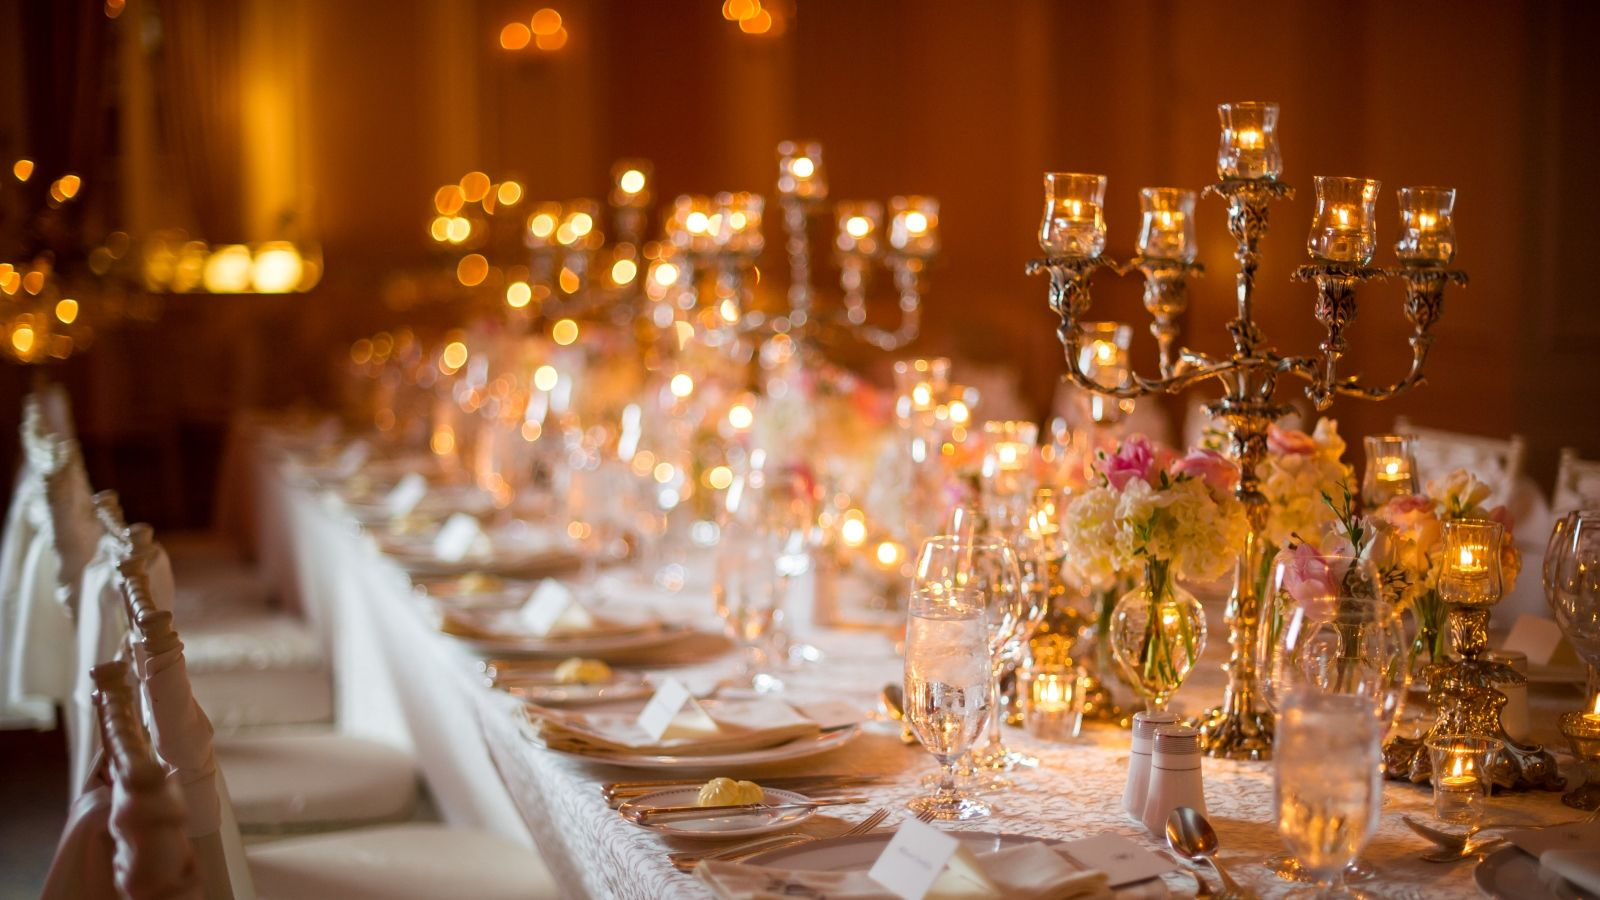 Buckhead Wedding Venues - The St. Regis Atlanta